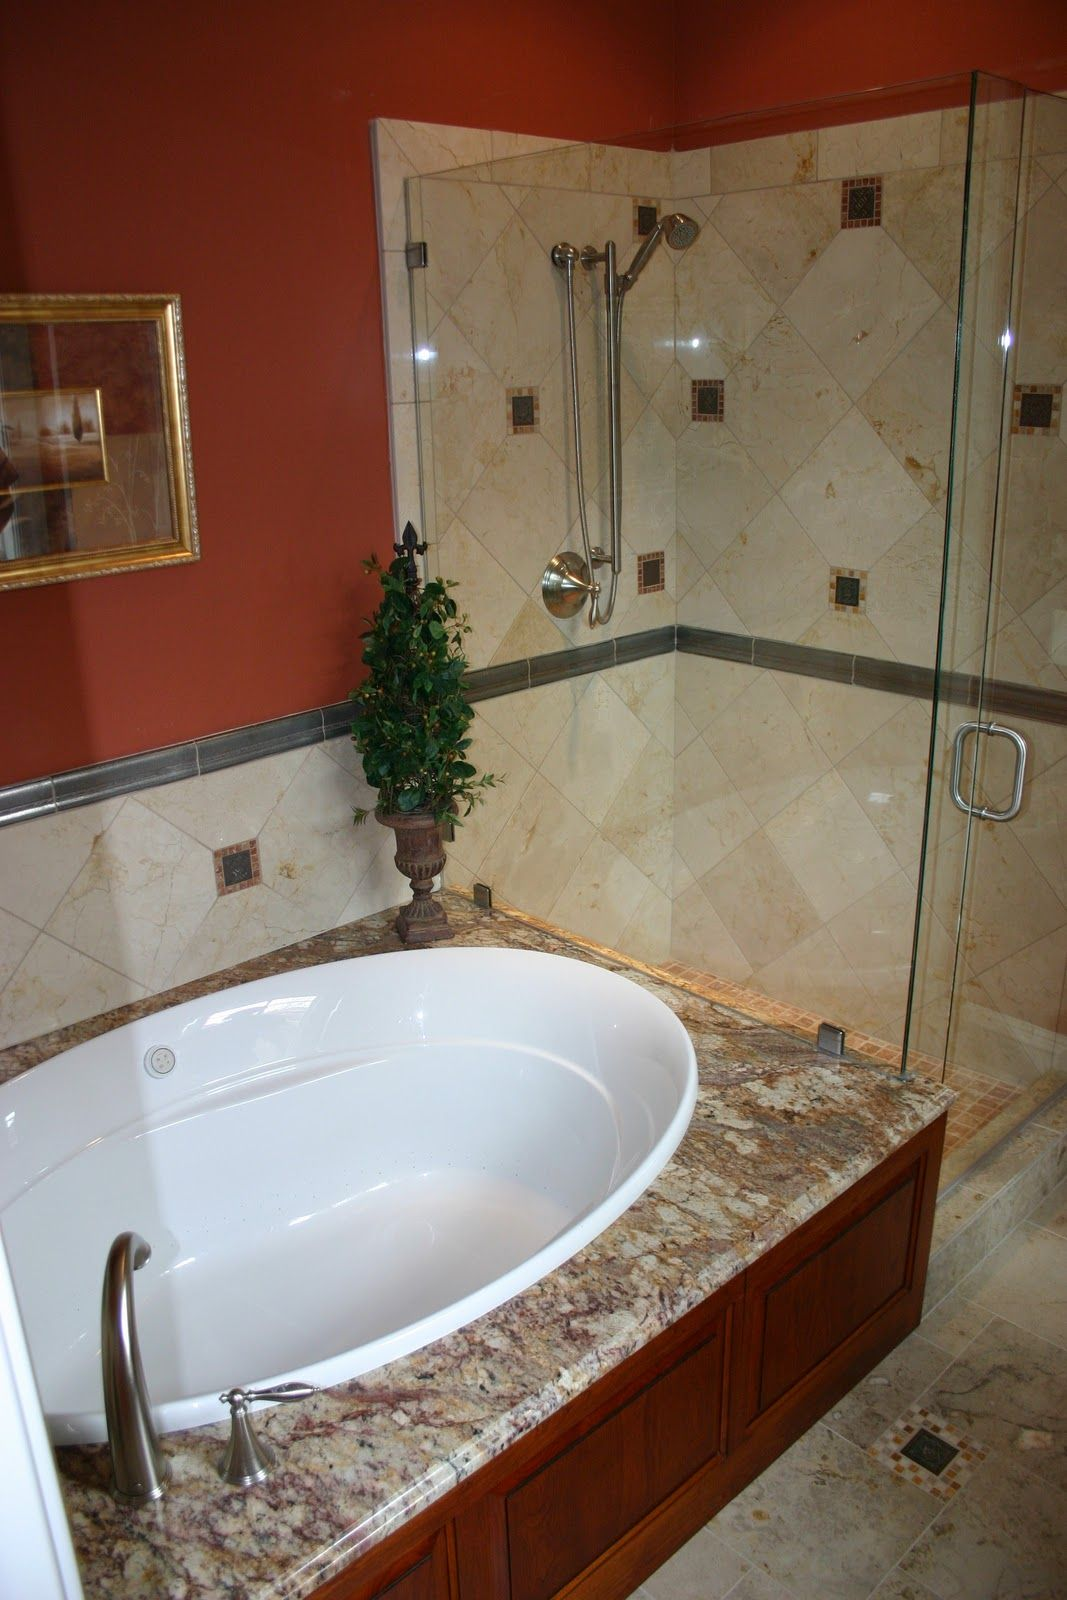 tile to go with typhoon bordeaux granite - Google Search   Master ...